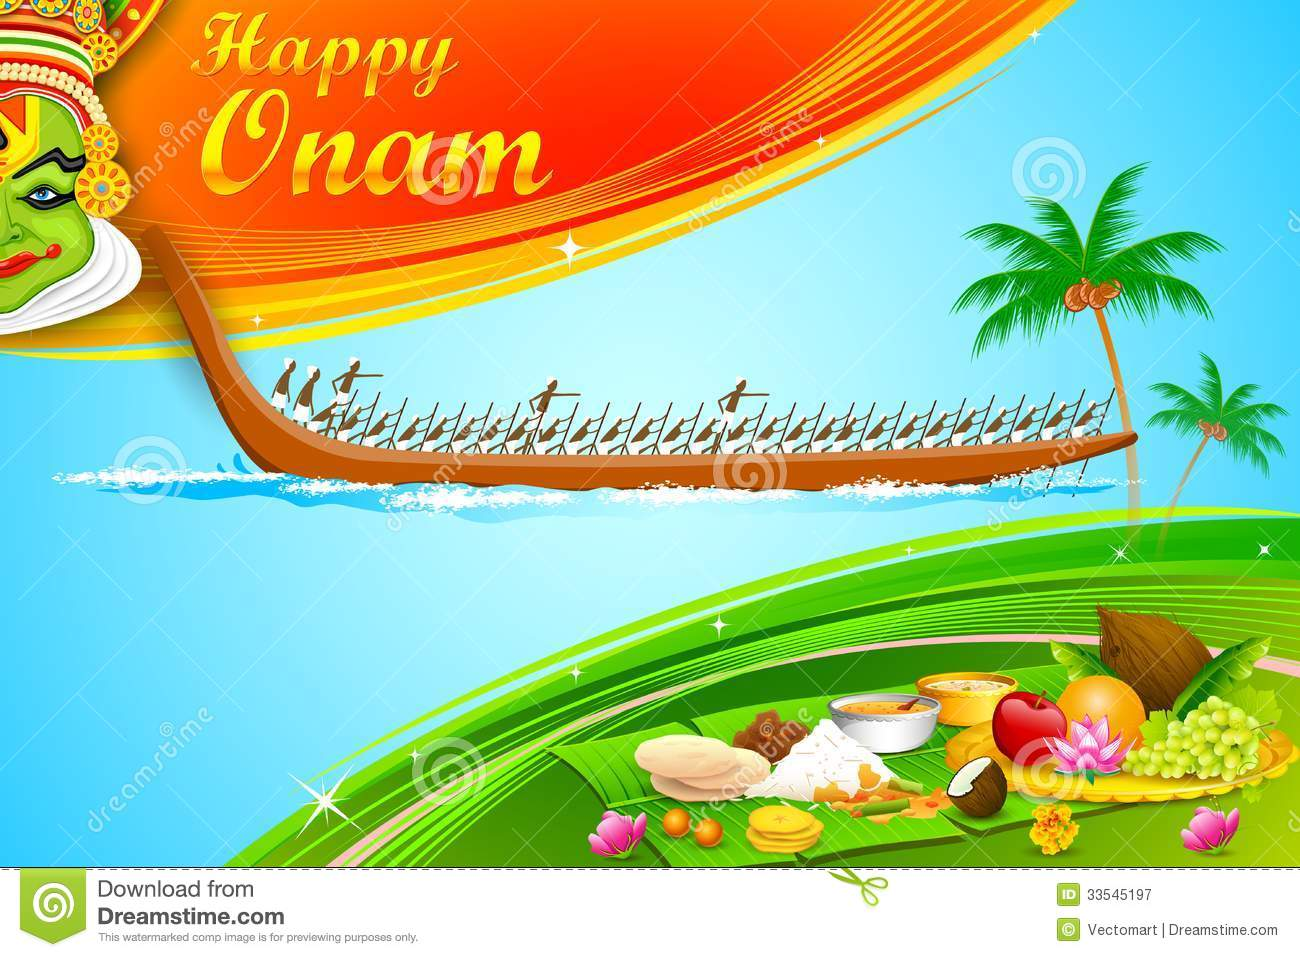 Mercedes Benz Jackson Ms >> Download Onam HD Wallpapers Free Download Gallery